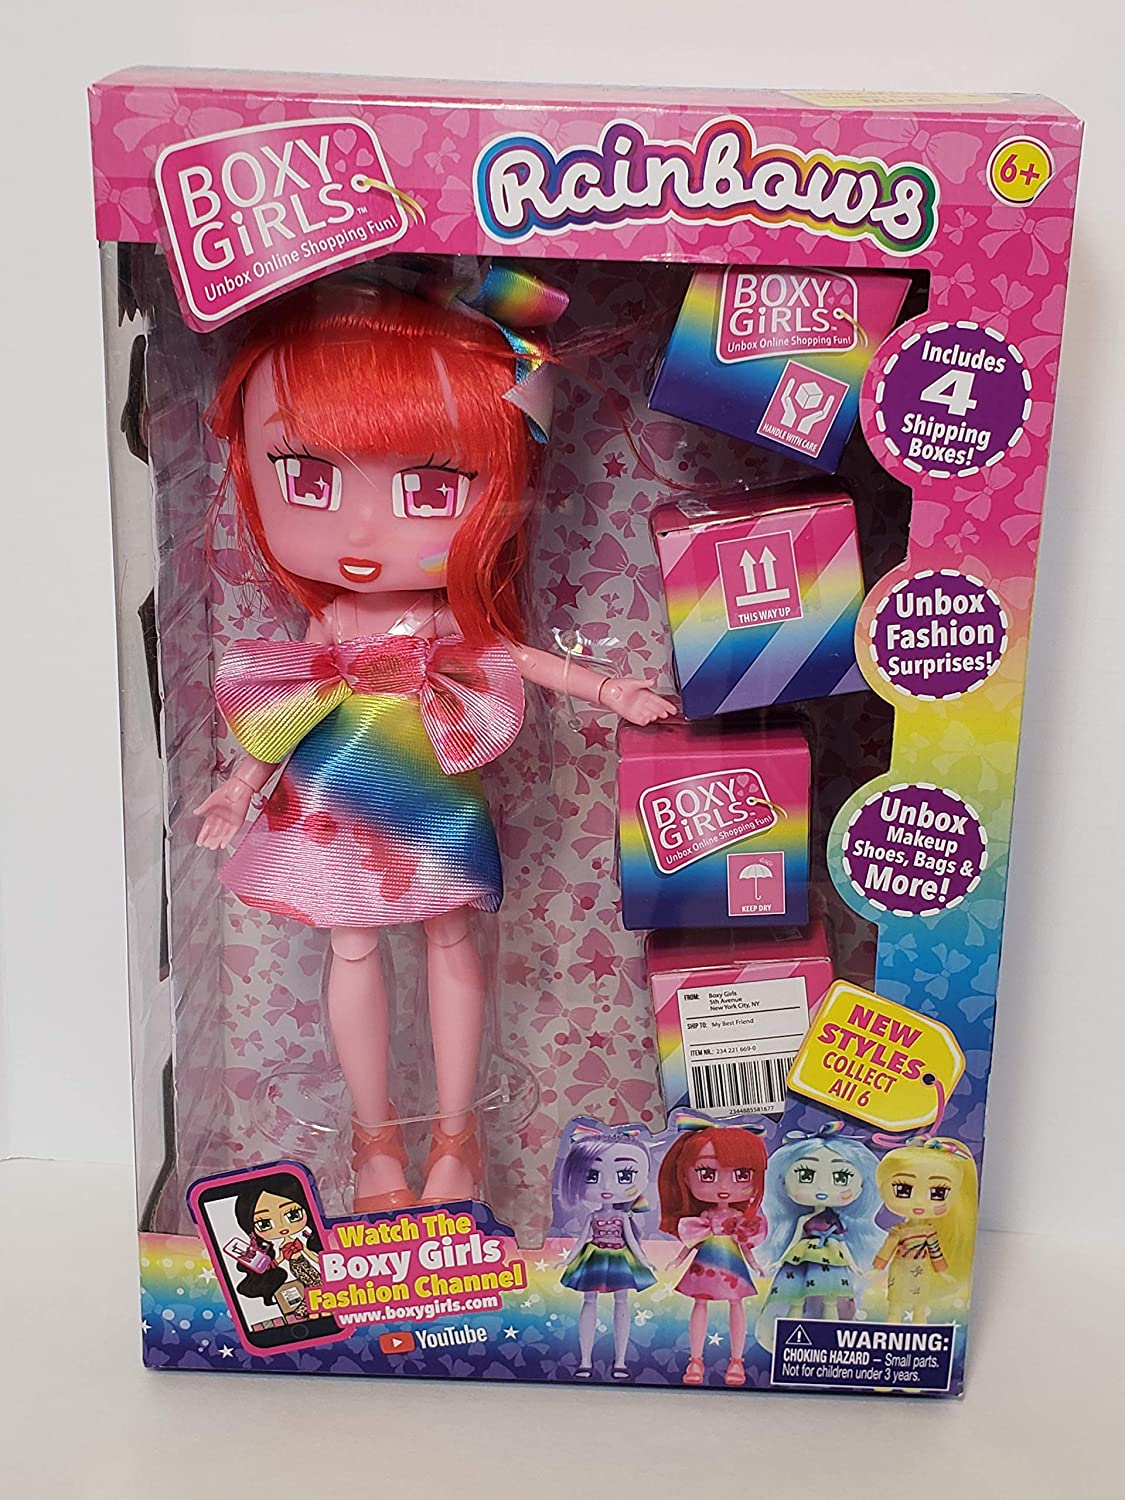 Boxy Girls - Rainbows Limited Edition - Rosie